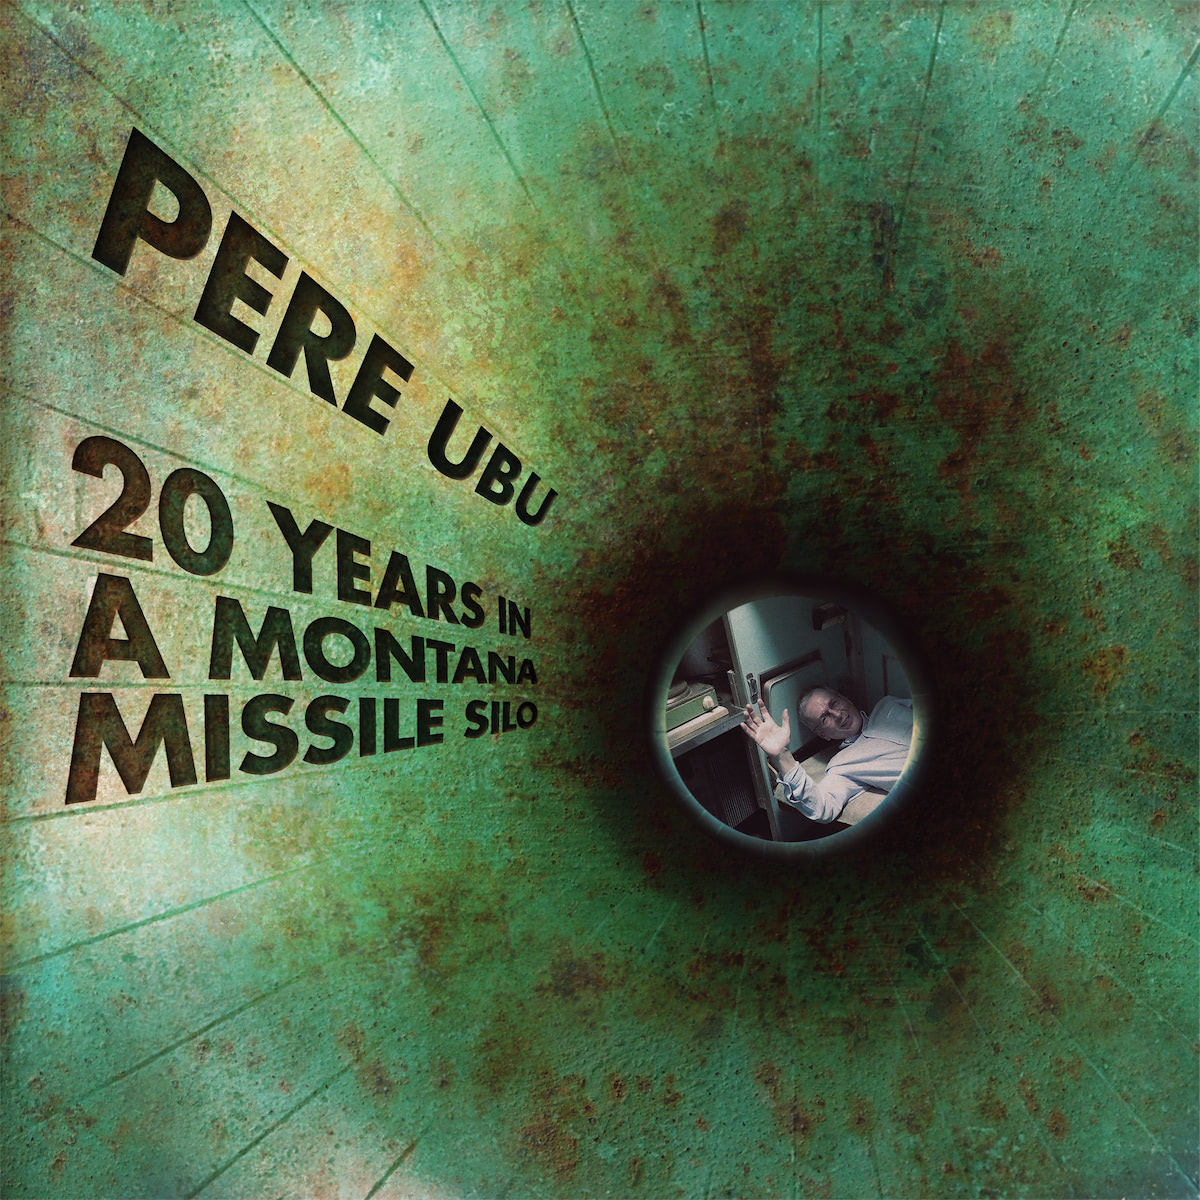 pere-ubu-20-years-in-a-montana-missile-silo